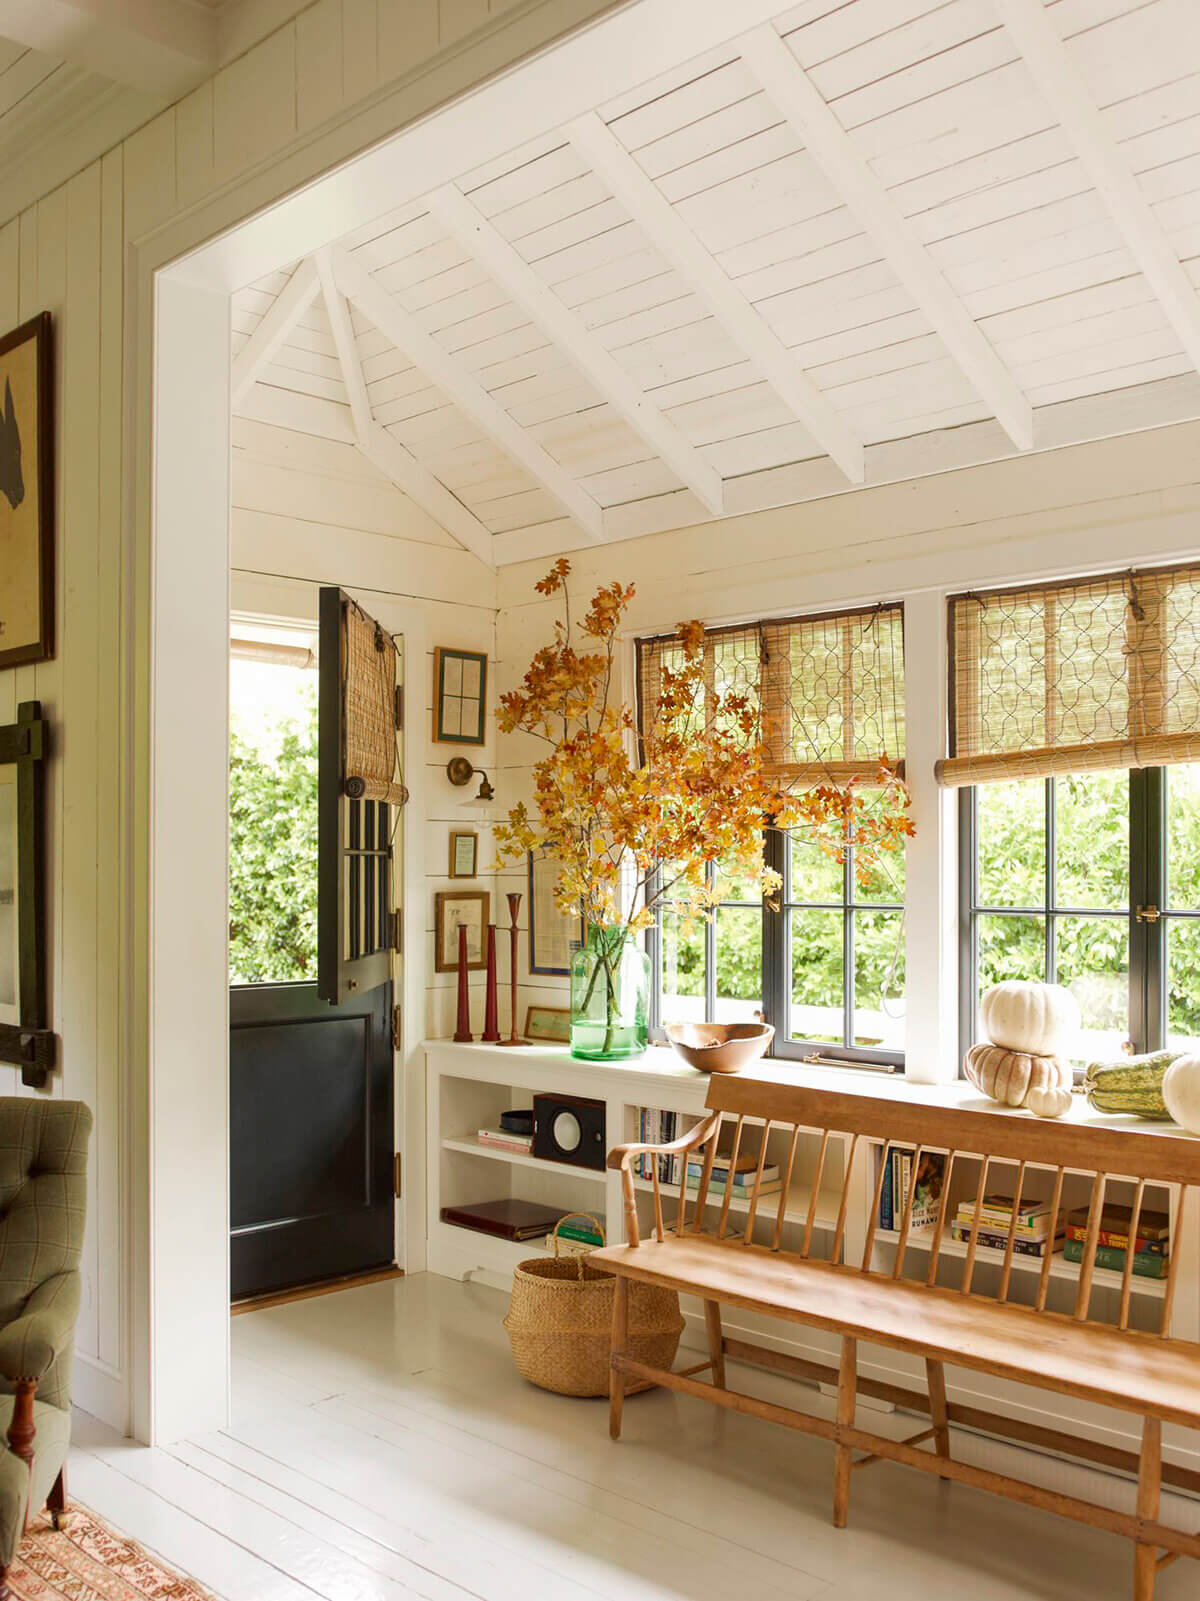 English Cottage Meets California Cool in a Mill Valley Home